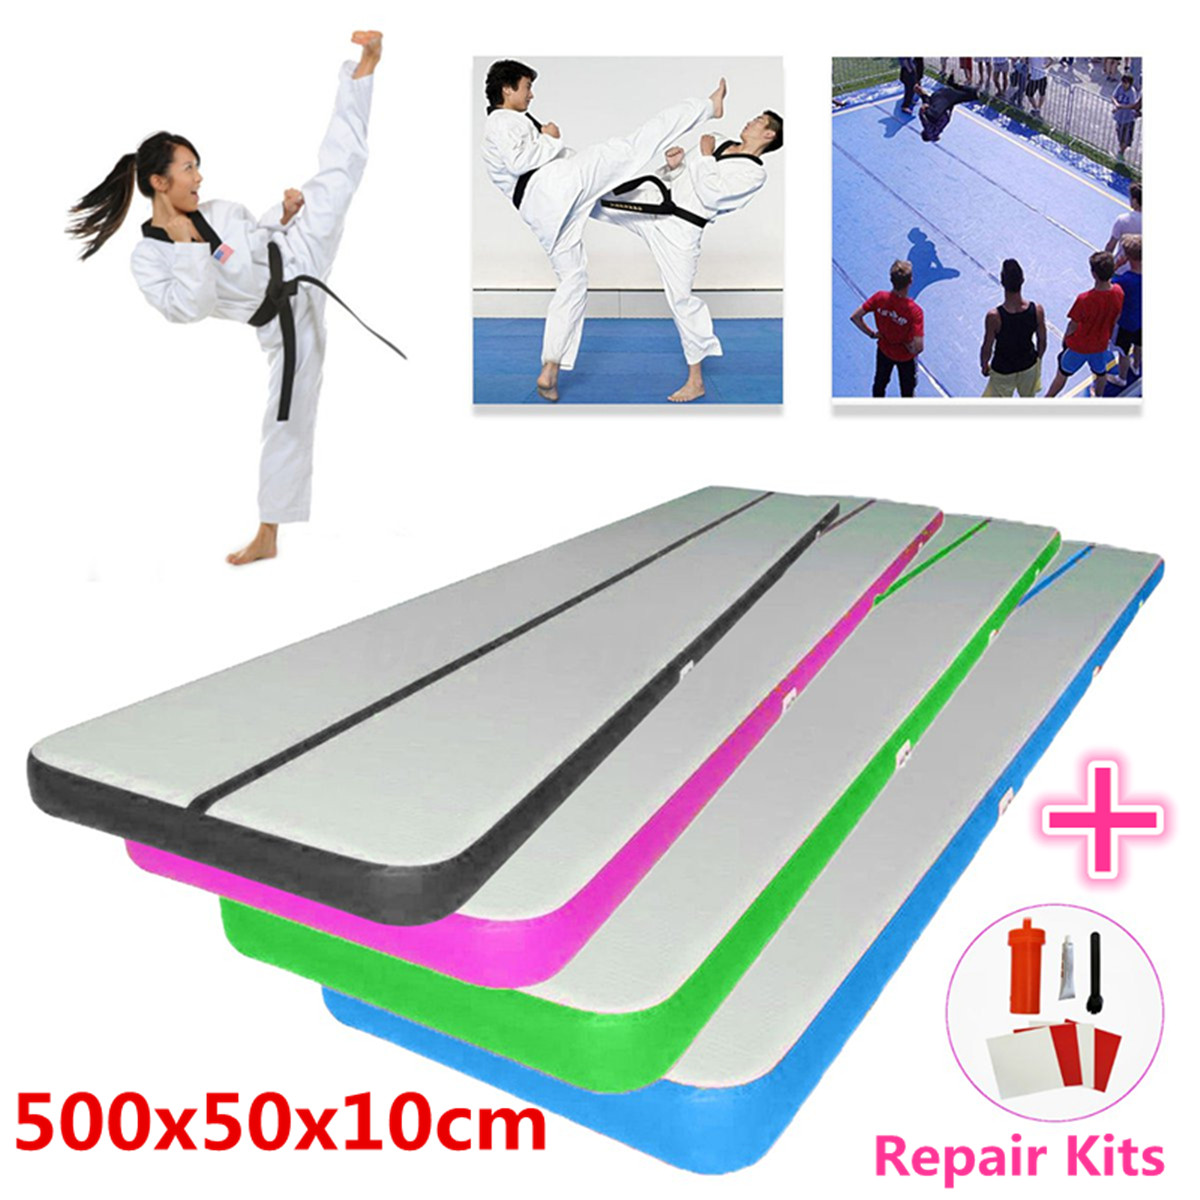 500x50x10cm/500x30x10 Airtrack Air Track Floor Home Inflatable Gymnastics Tumbling Mat GYM Inflatable Balance Equipment Exercise 8m gymnastics air track fitness exercise gym air tumbling mat training inflatable track floor home gymnastic high quality